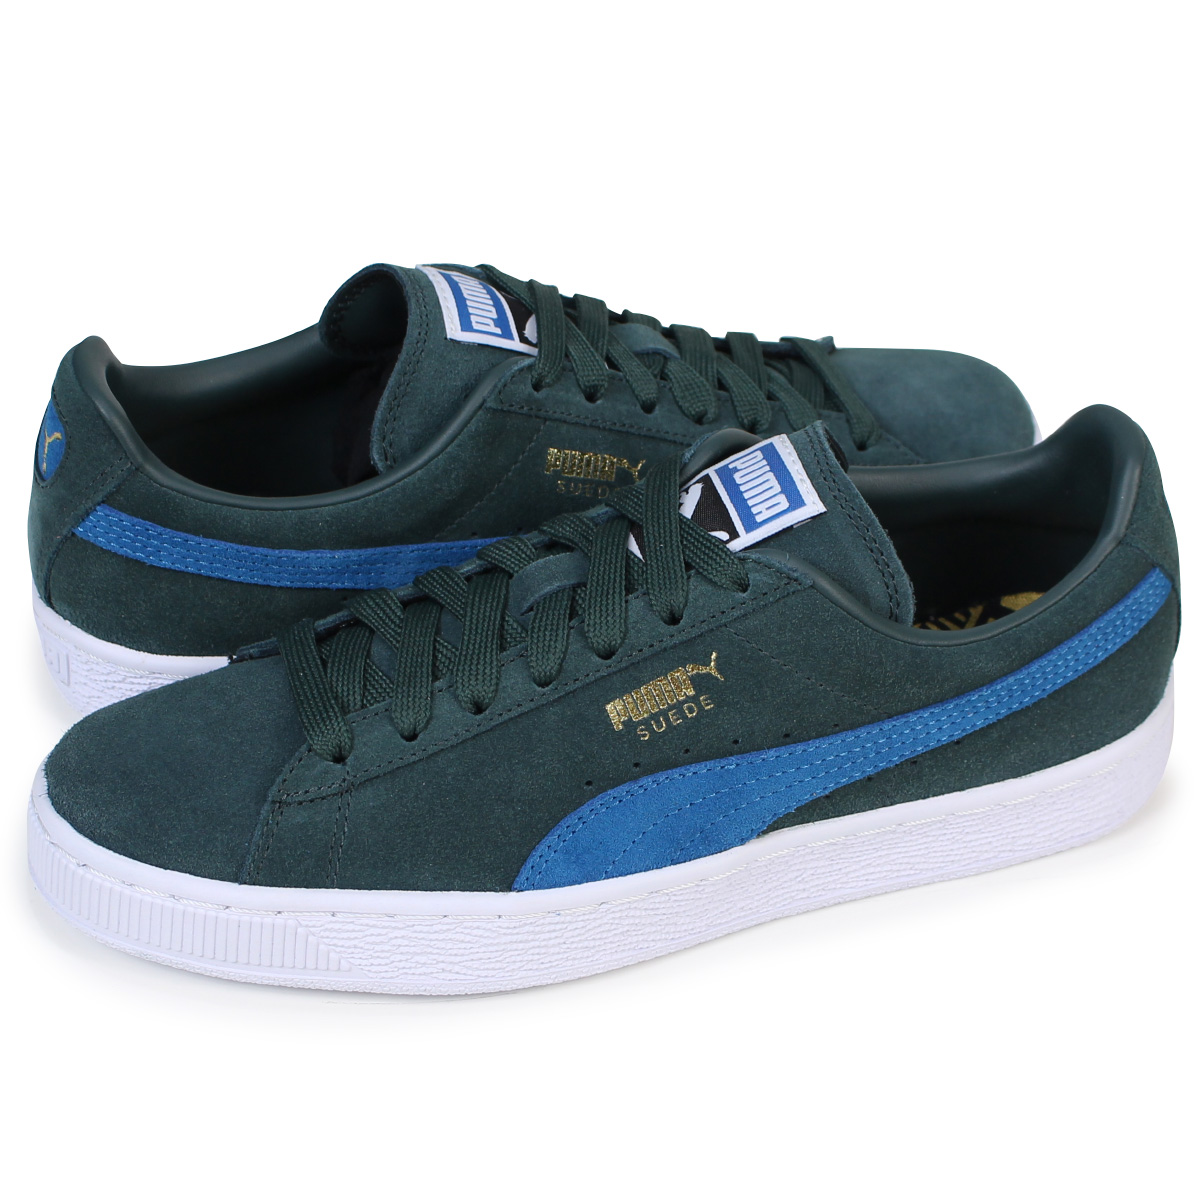 free shipping 5a0d1 c45b1 PUMA SUEDE CLASSIC + Puma suede classical music sneakers 363,242-30 men's  lady's shoes green [1712]